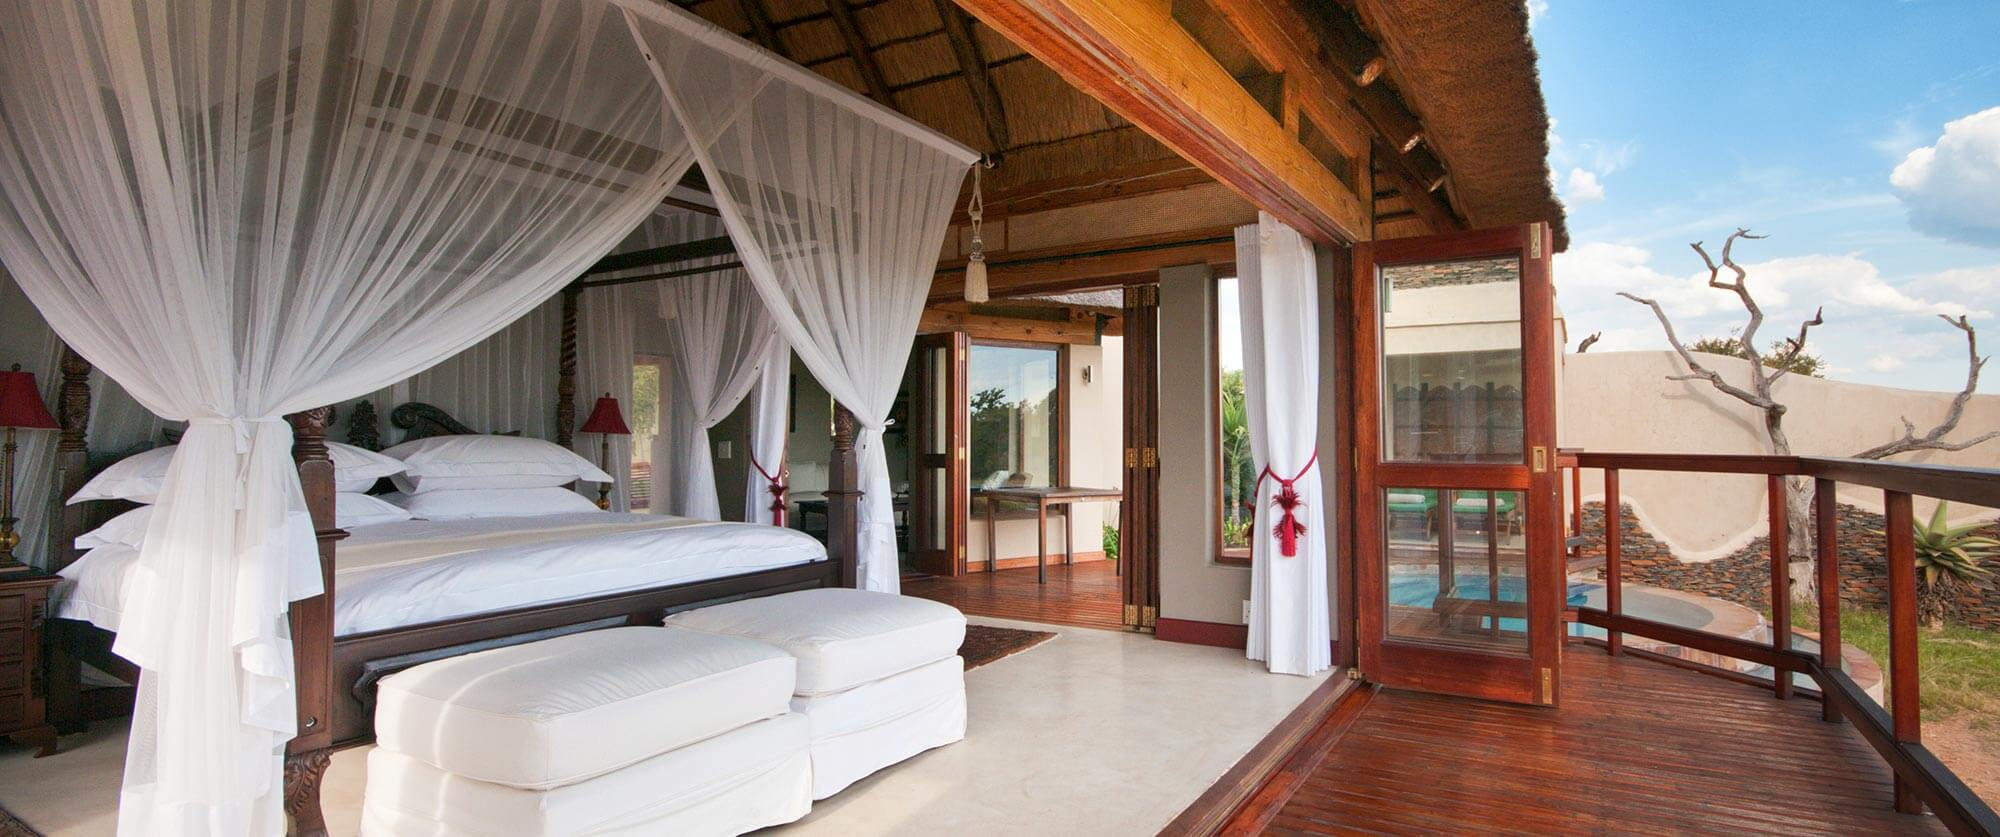 Suite Interior - Jamala Madikwe Lodge - African Family Safari